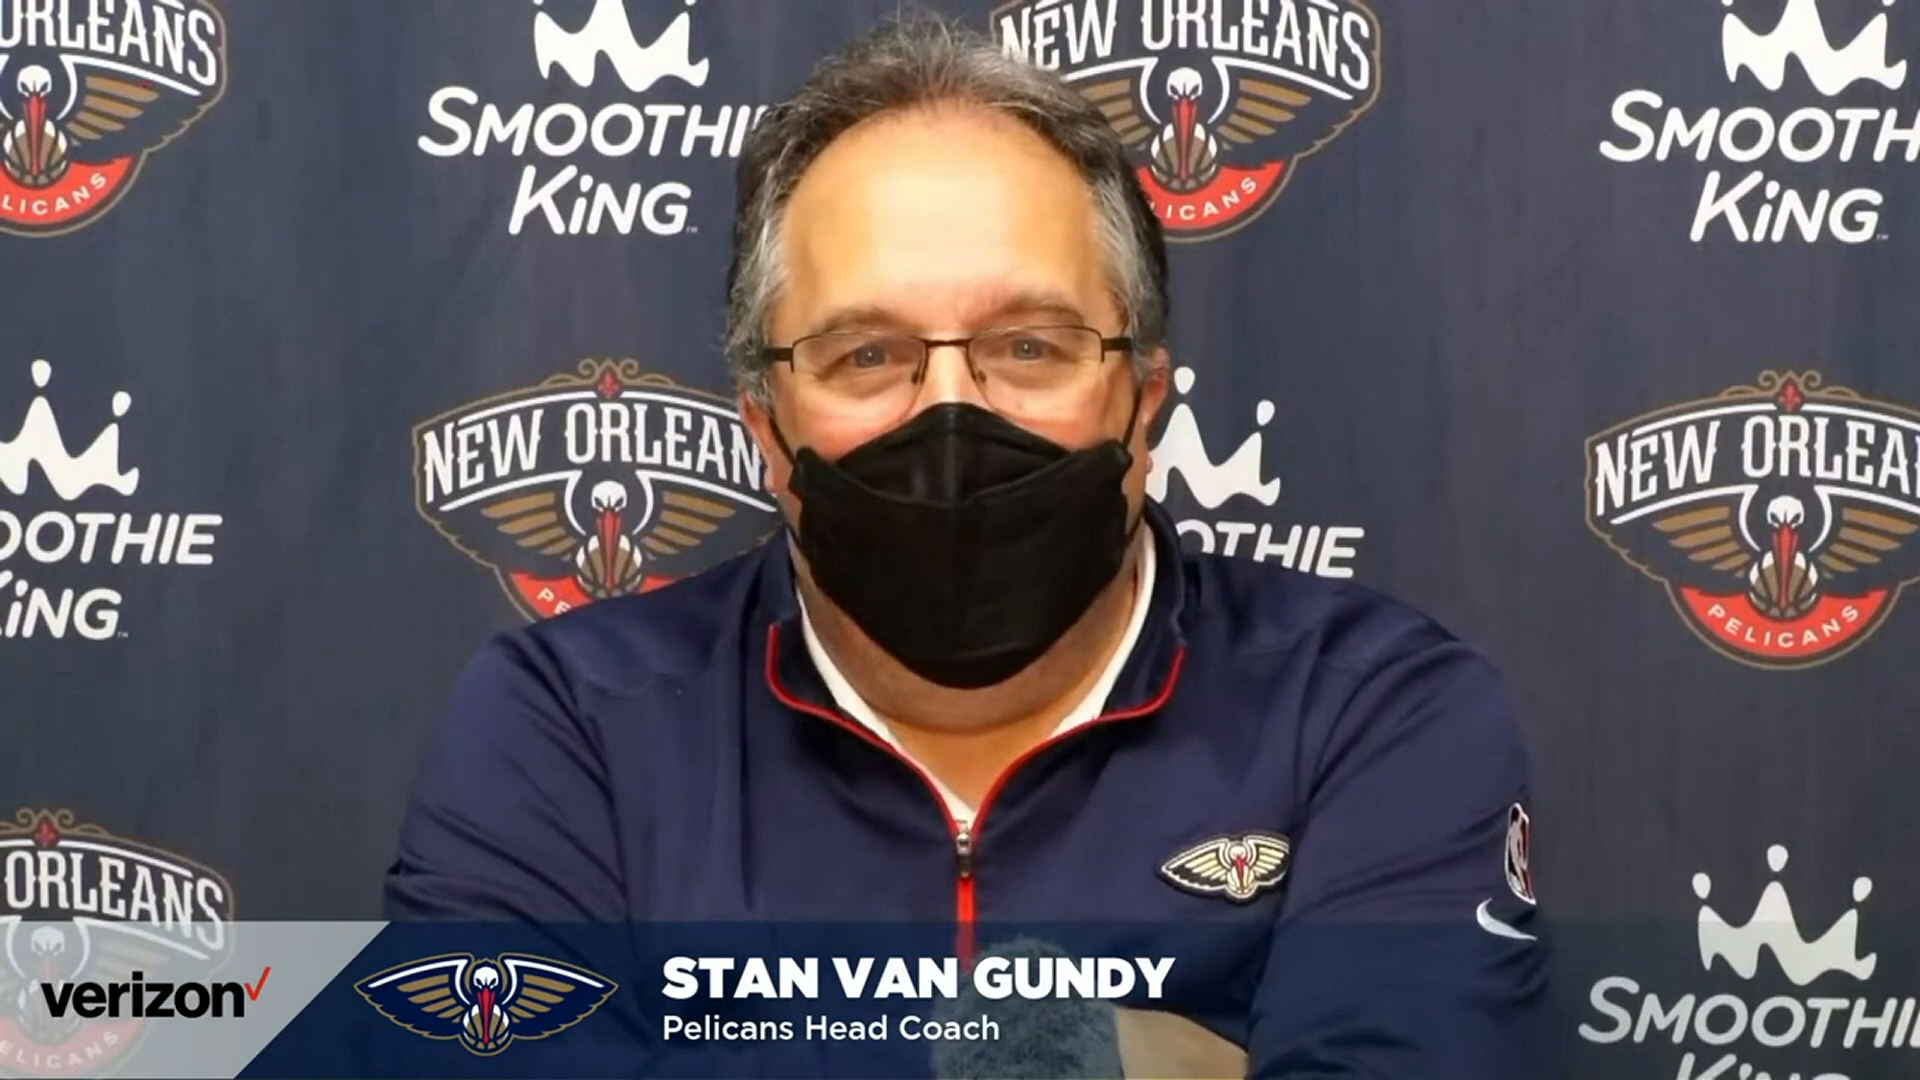 Pelicans-Grizzlies Postgame Interview: Stan Van Gundy 5-10-21